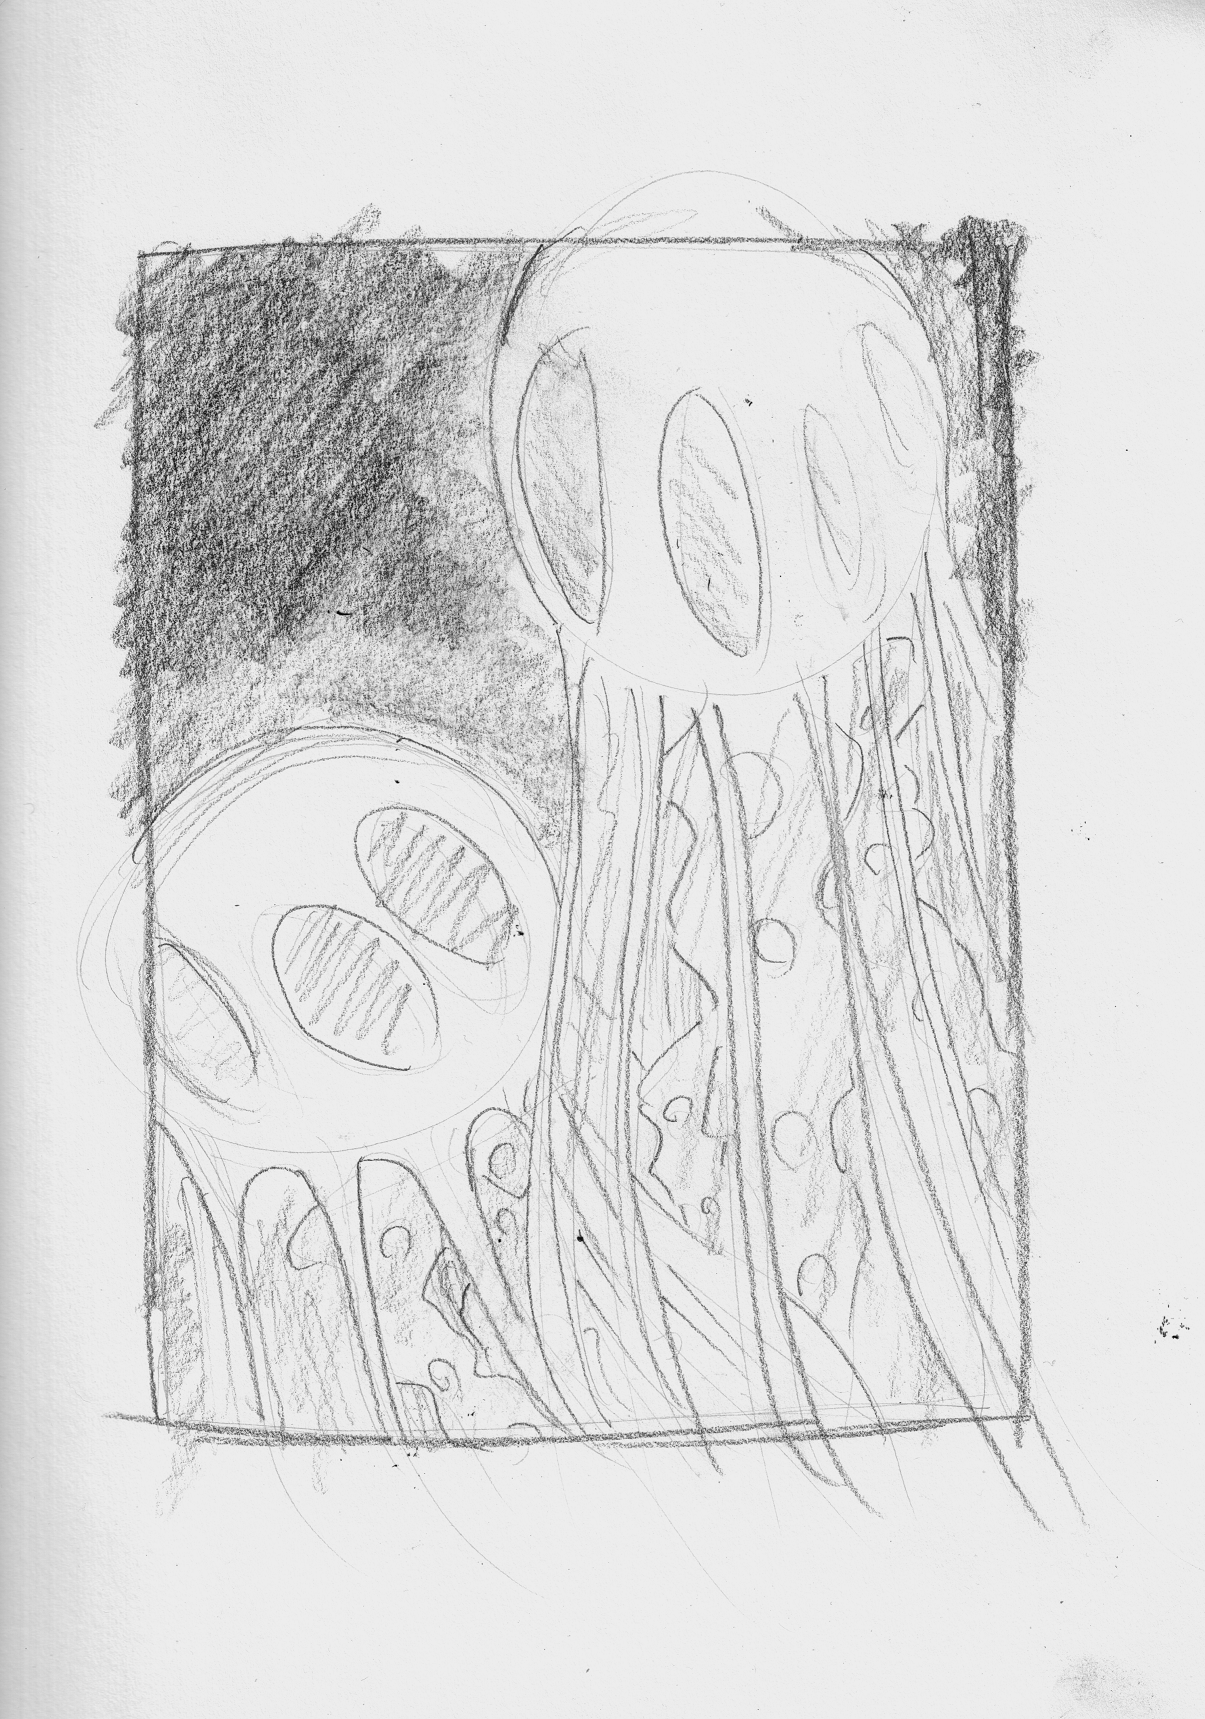 jellyfish sketch2.png